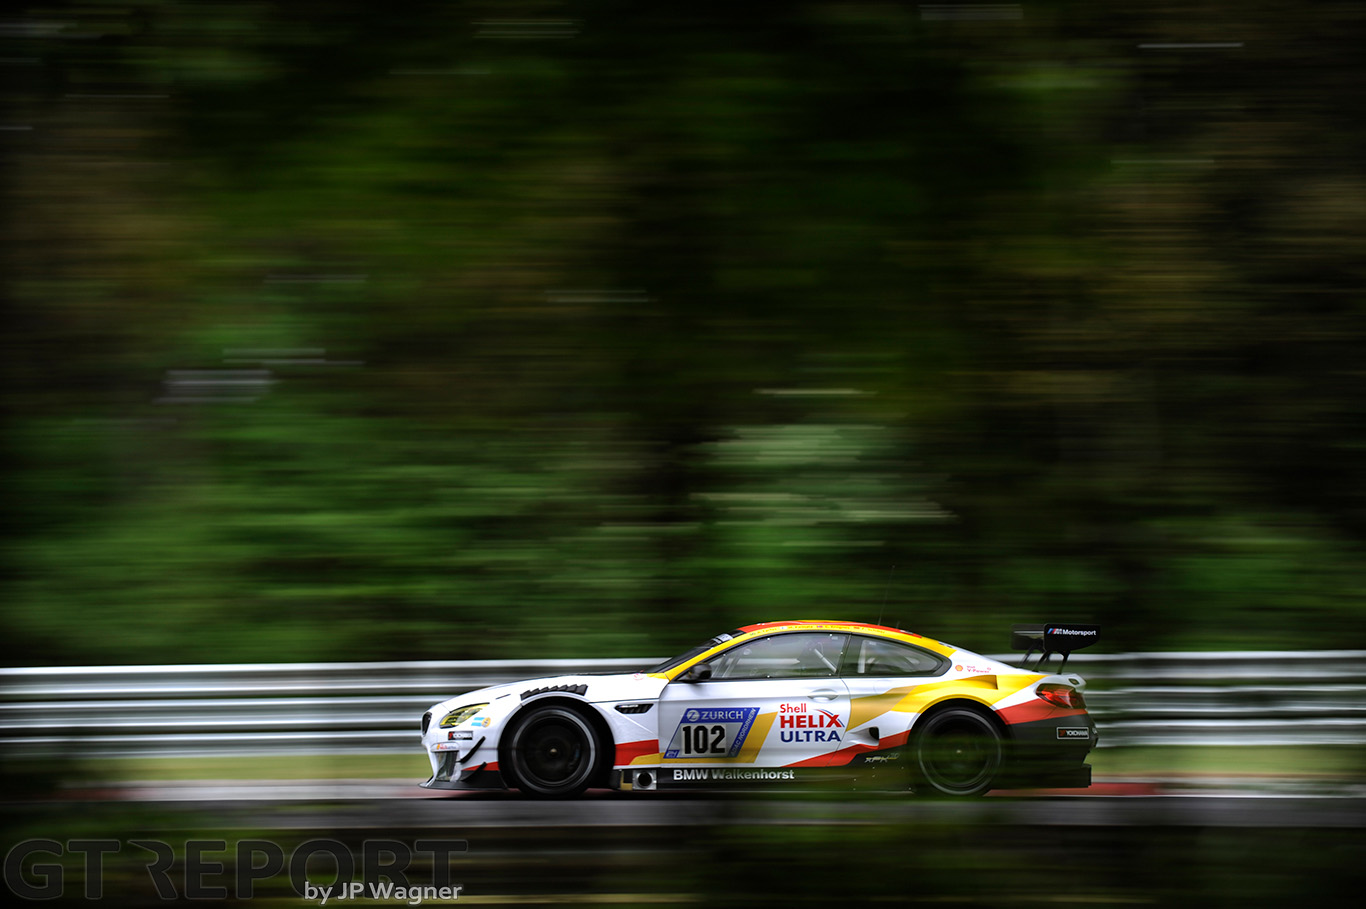 N24 Now Christian Krognes At The N24 Intro Gt Report